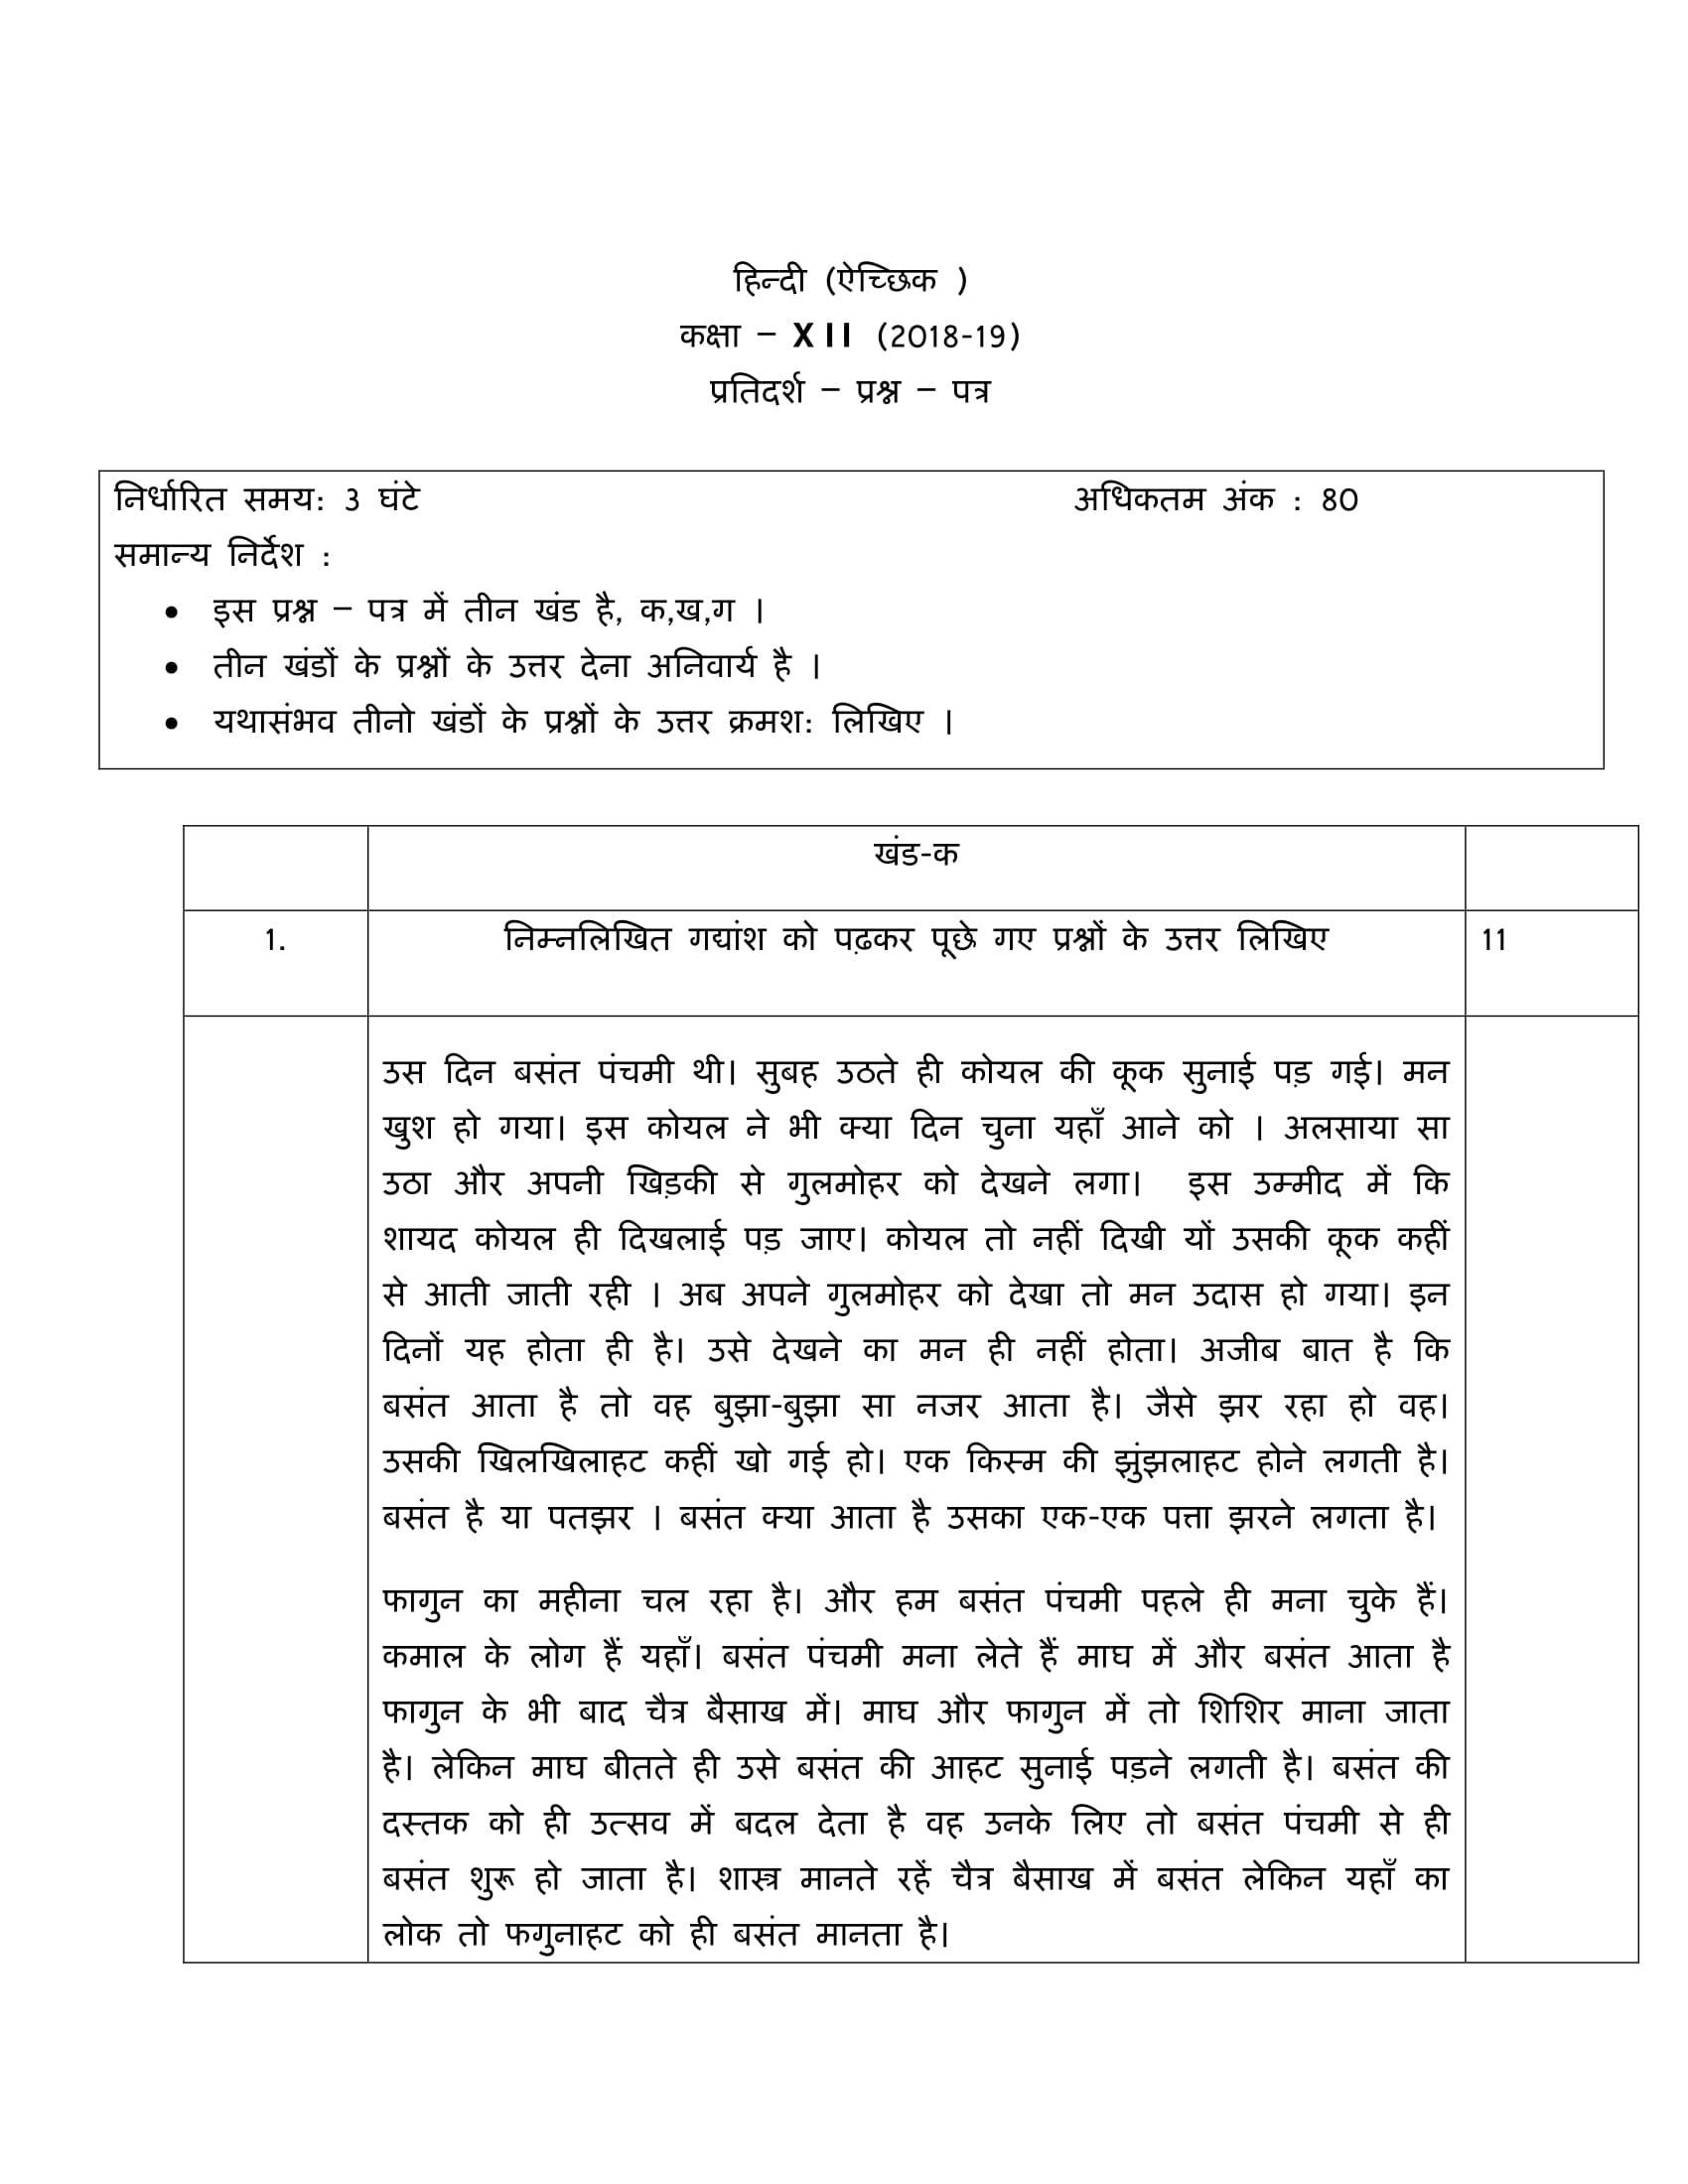 Hindi Elective Class 12 CBSE Solved Papers For Boards 2019 with Answers, Marking Scheme PDF Download